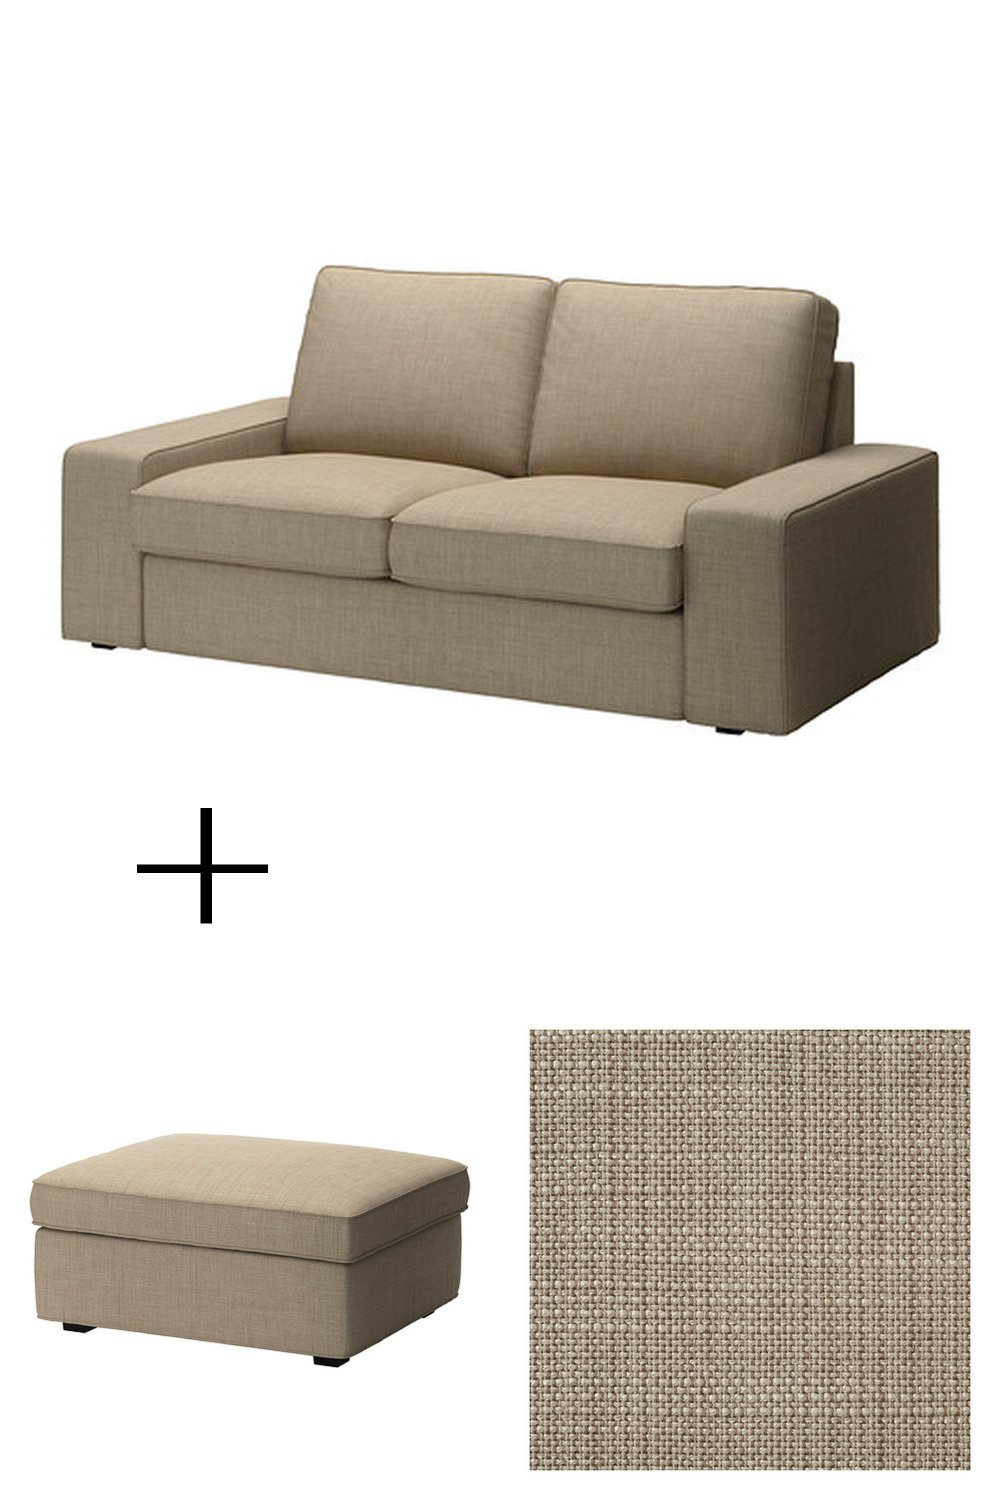 Ikea Kivik 2 Seat Sofa And Footstool Slipcovers Loveseat Ottoman Covers Isunda Beige Linen Blend